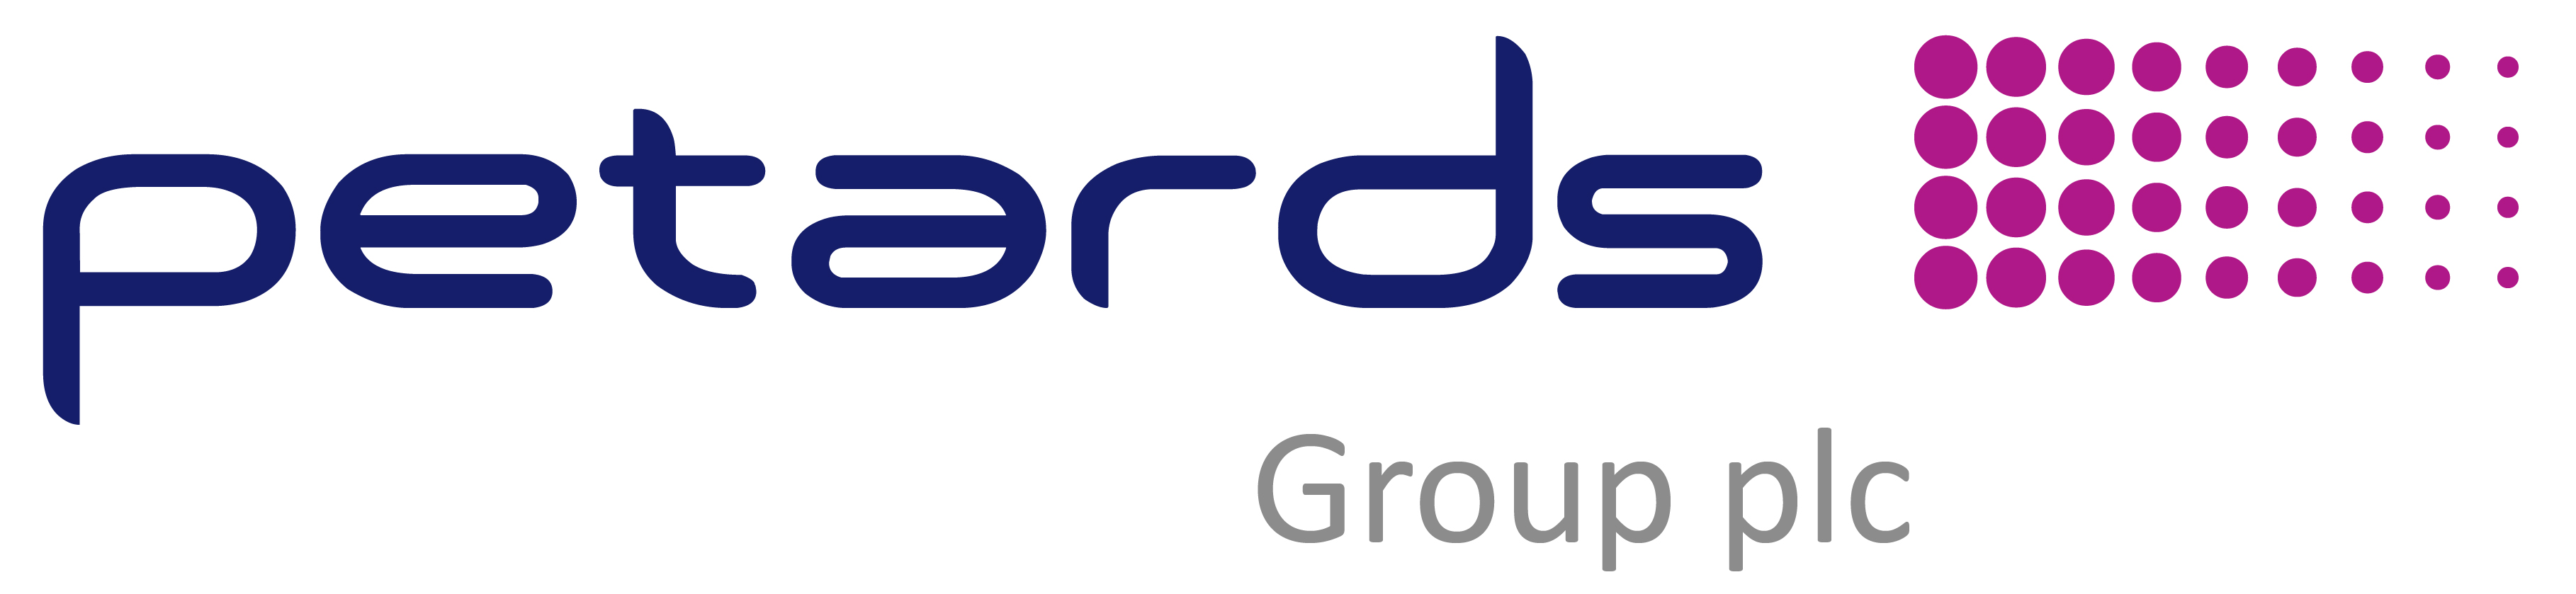 Petards Group plc (Small p) (Mid Grey)